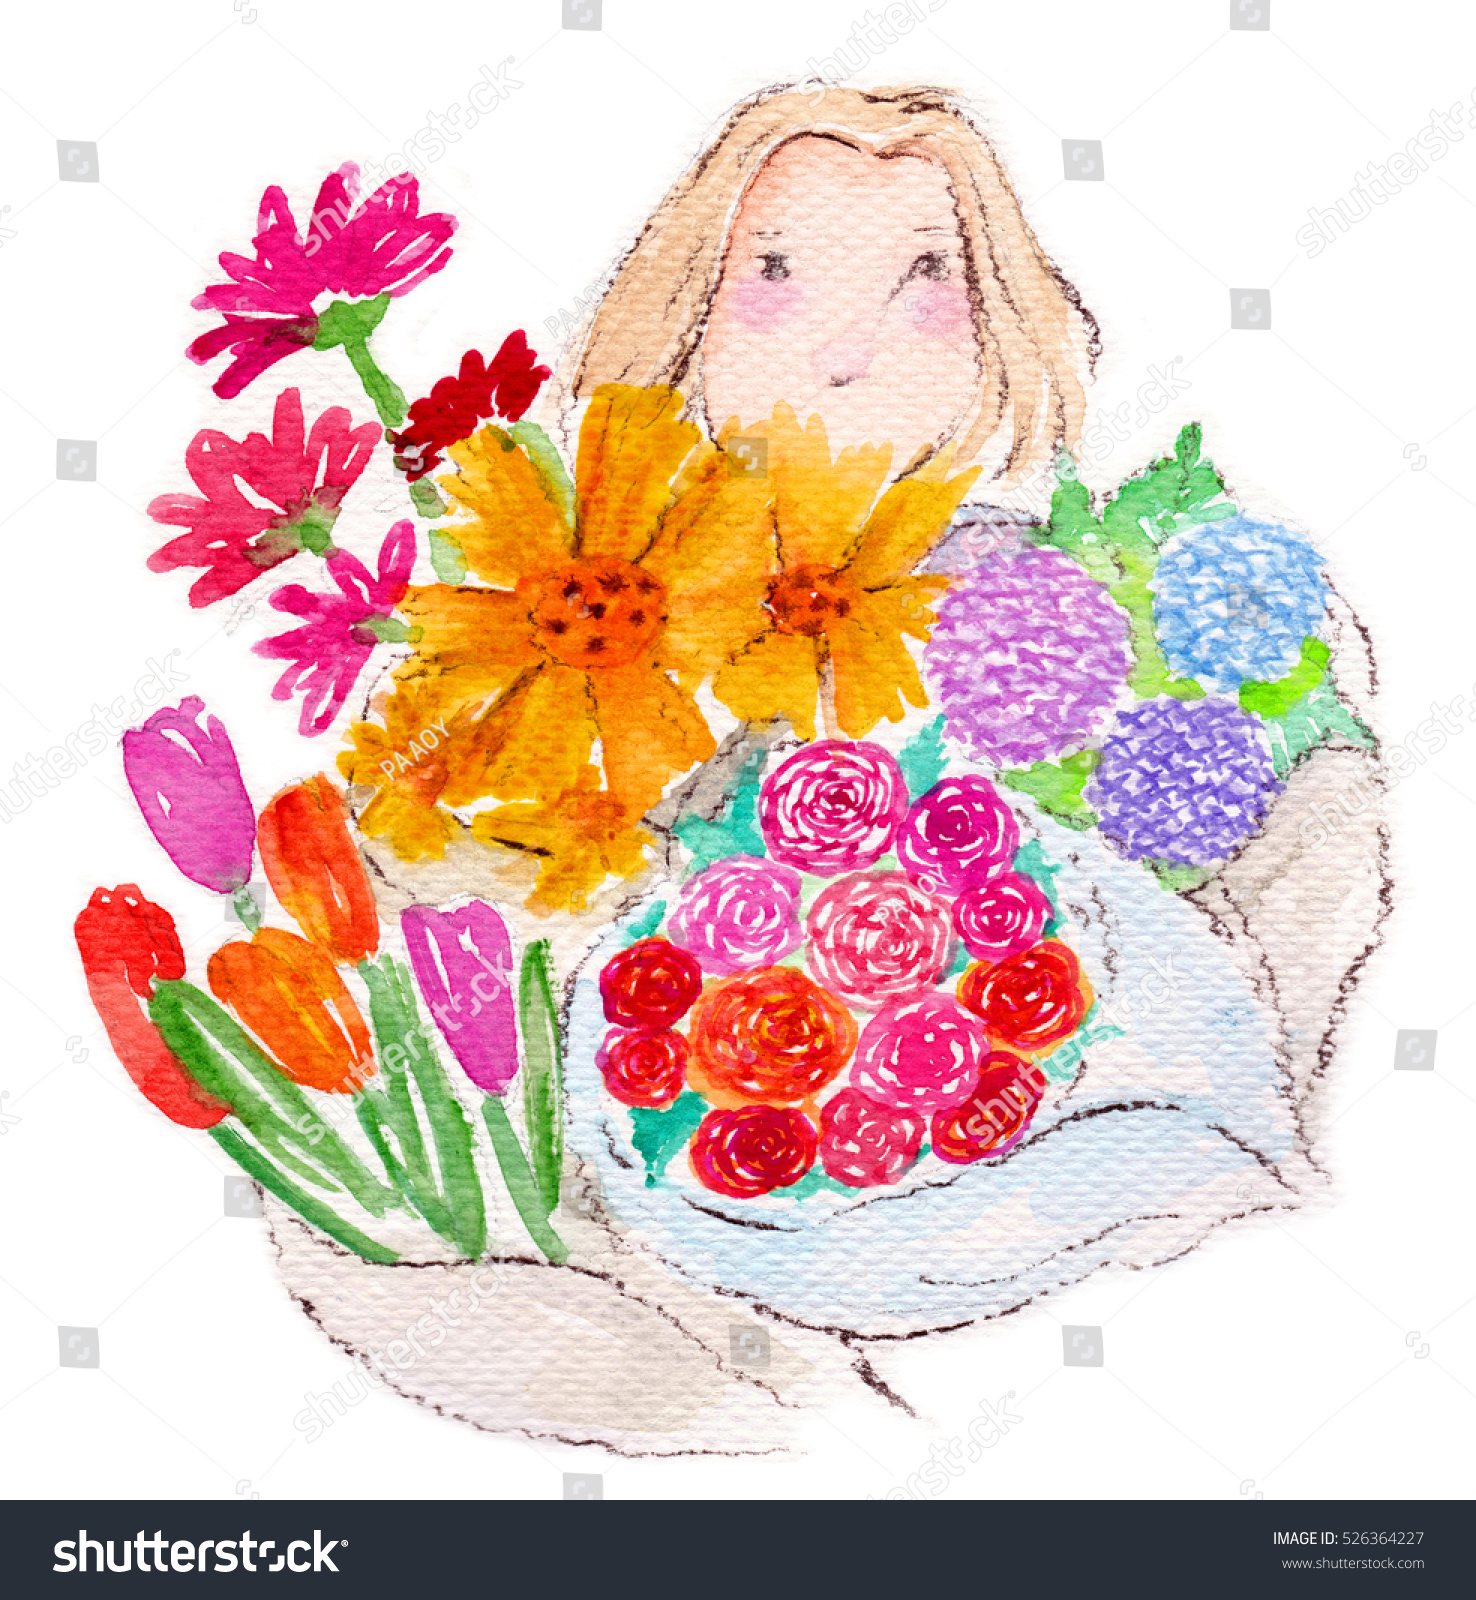 Cute Girl Bouquet Flowers Stock Illustration 526364227 - Shutterstock